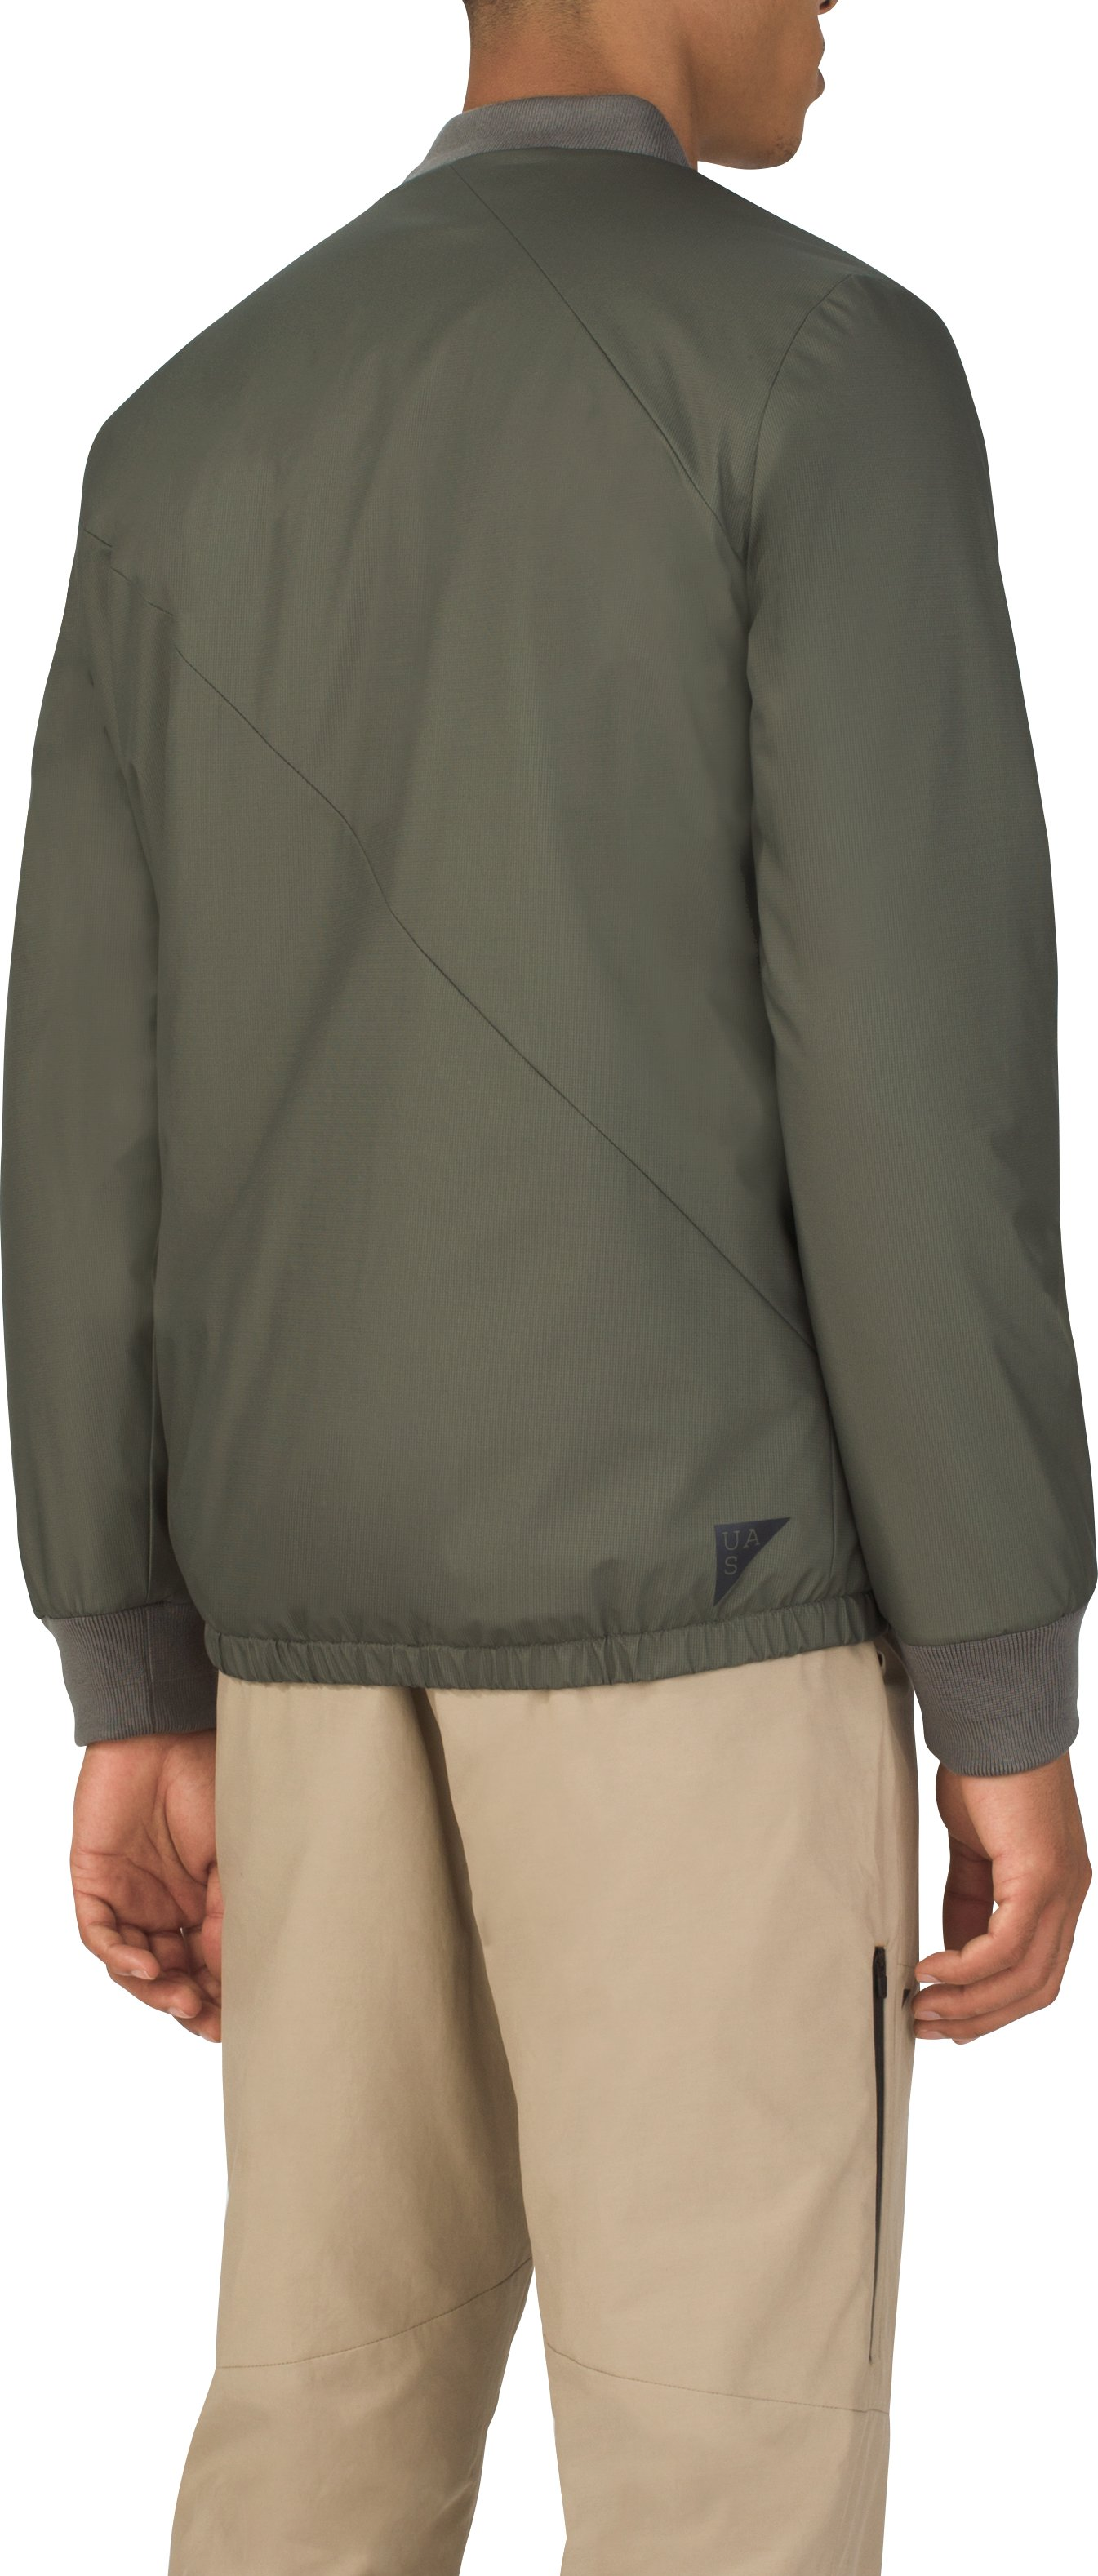 Men's UAS Letterman Jacket, MILITARY GREEN, undefined